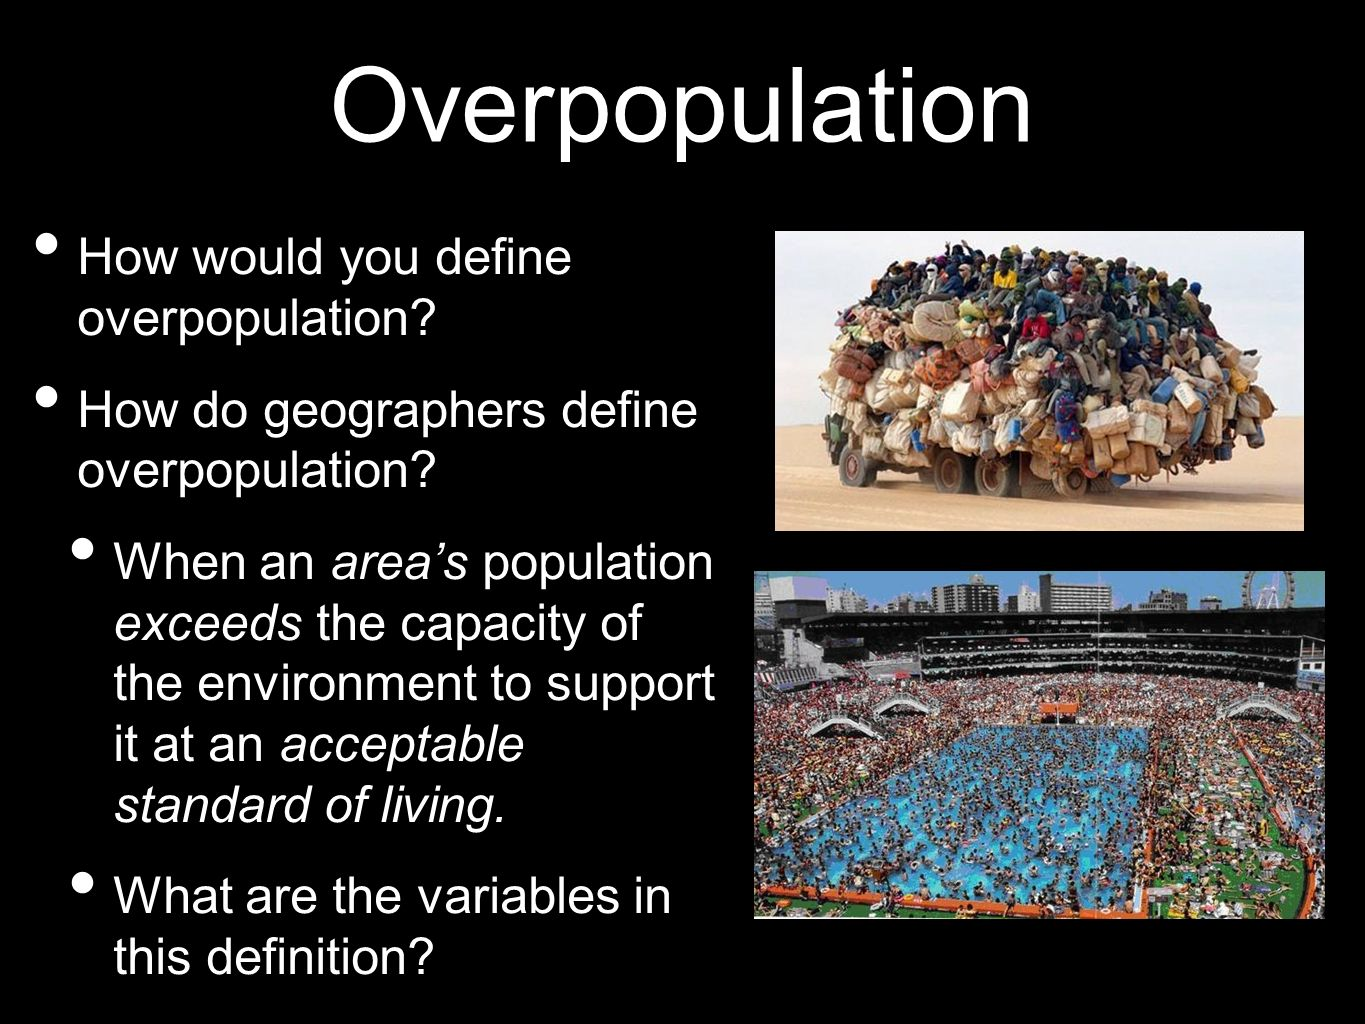 Overpopulation How would you define overpopulation? How do geographers define overpopulation? When an areas population exceeds the capacity of the env